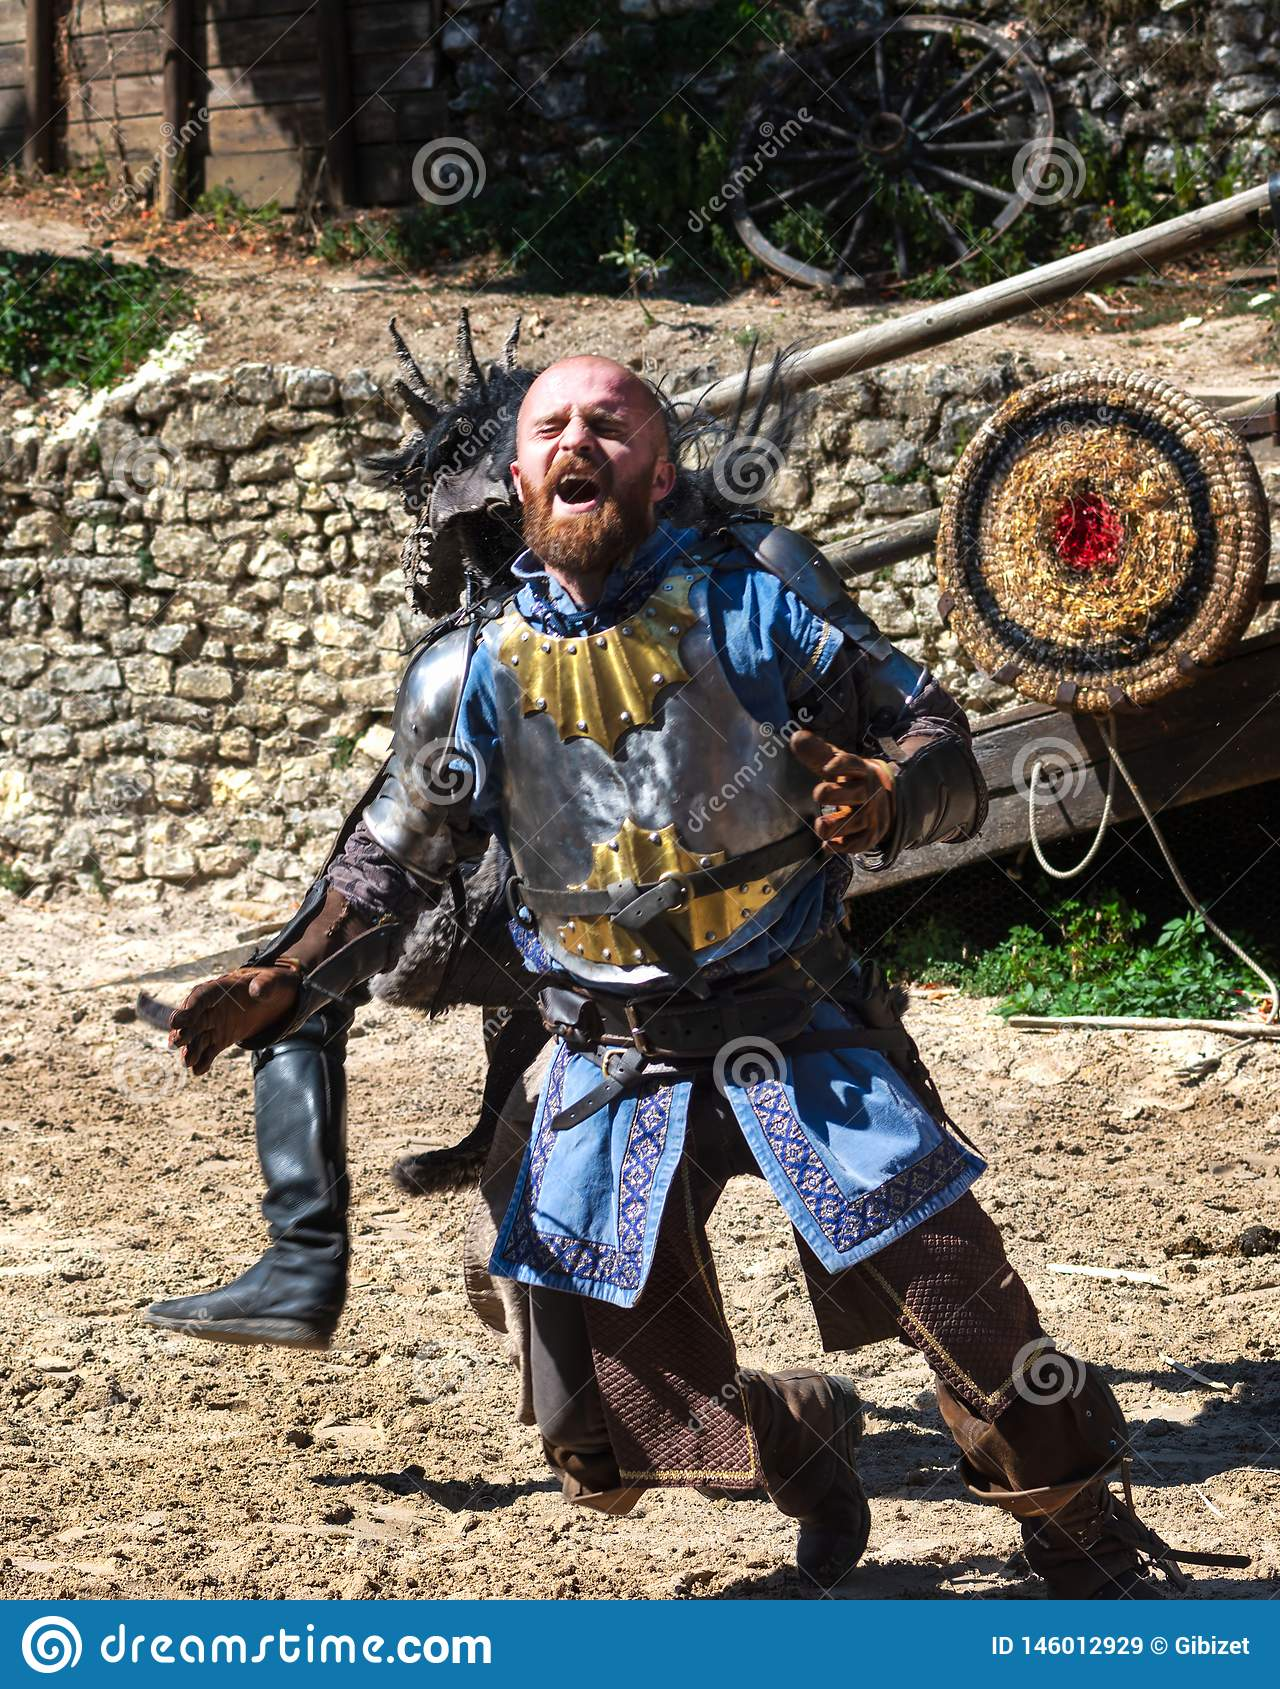 The Show:  The Legend of Knights in Provins, France